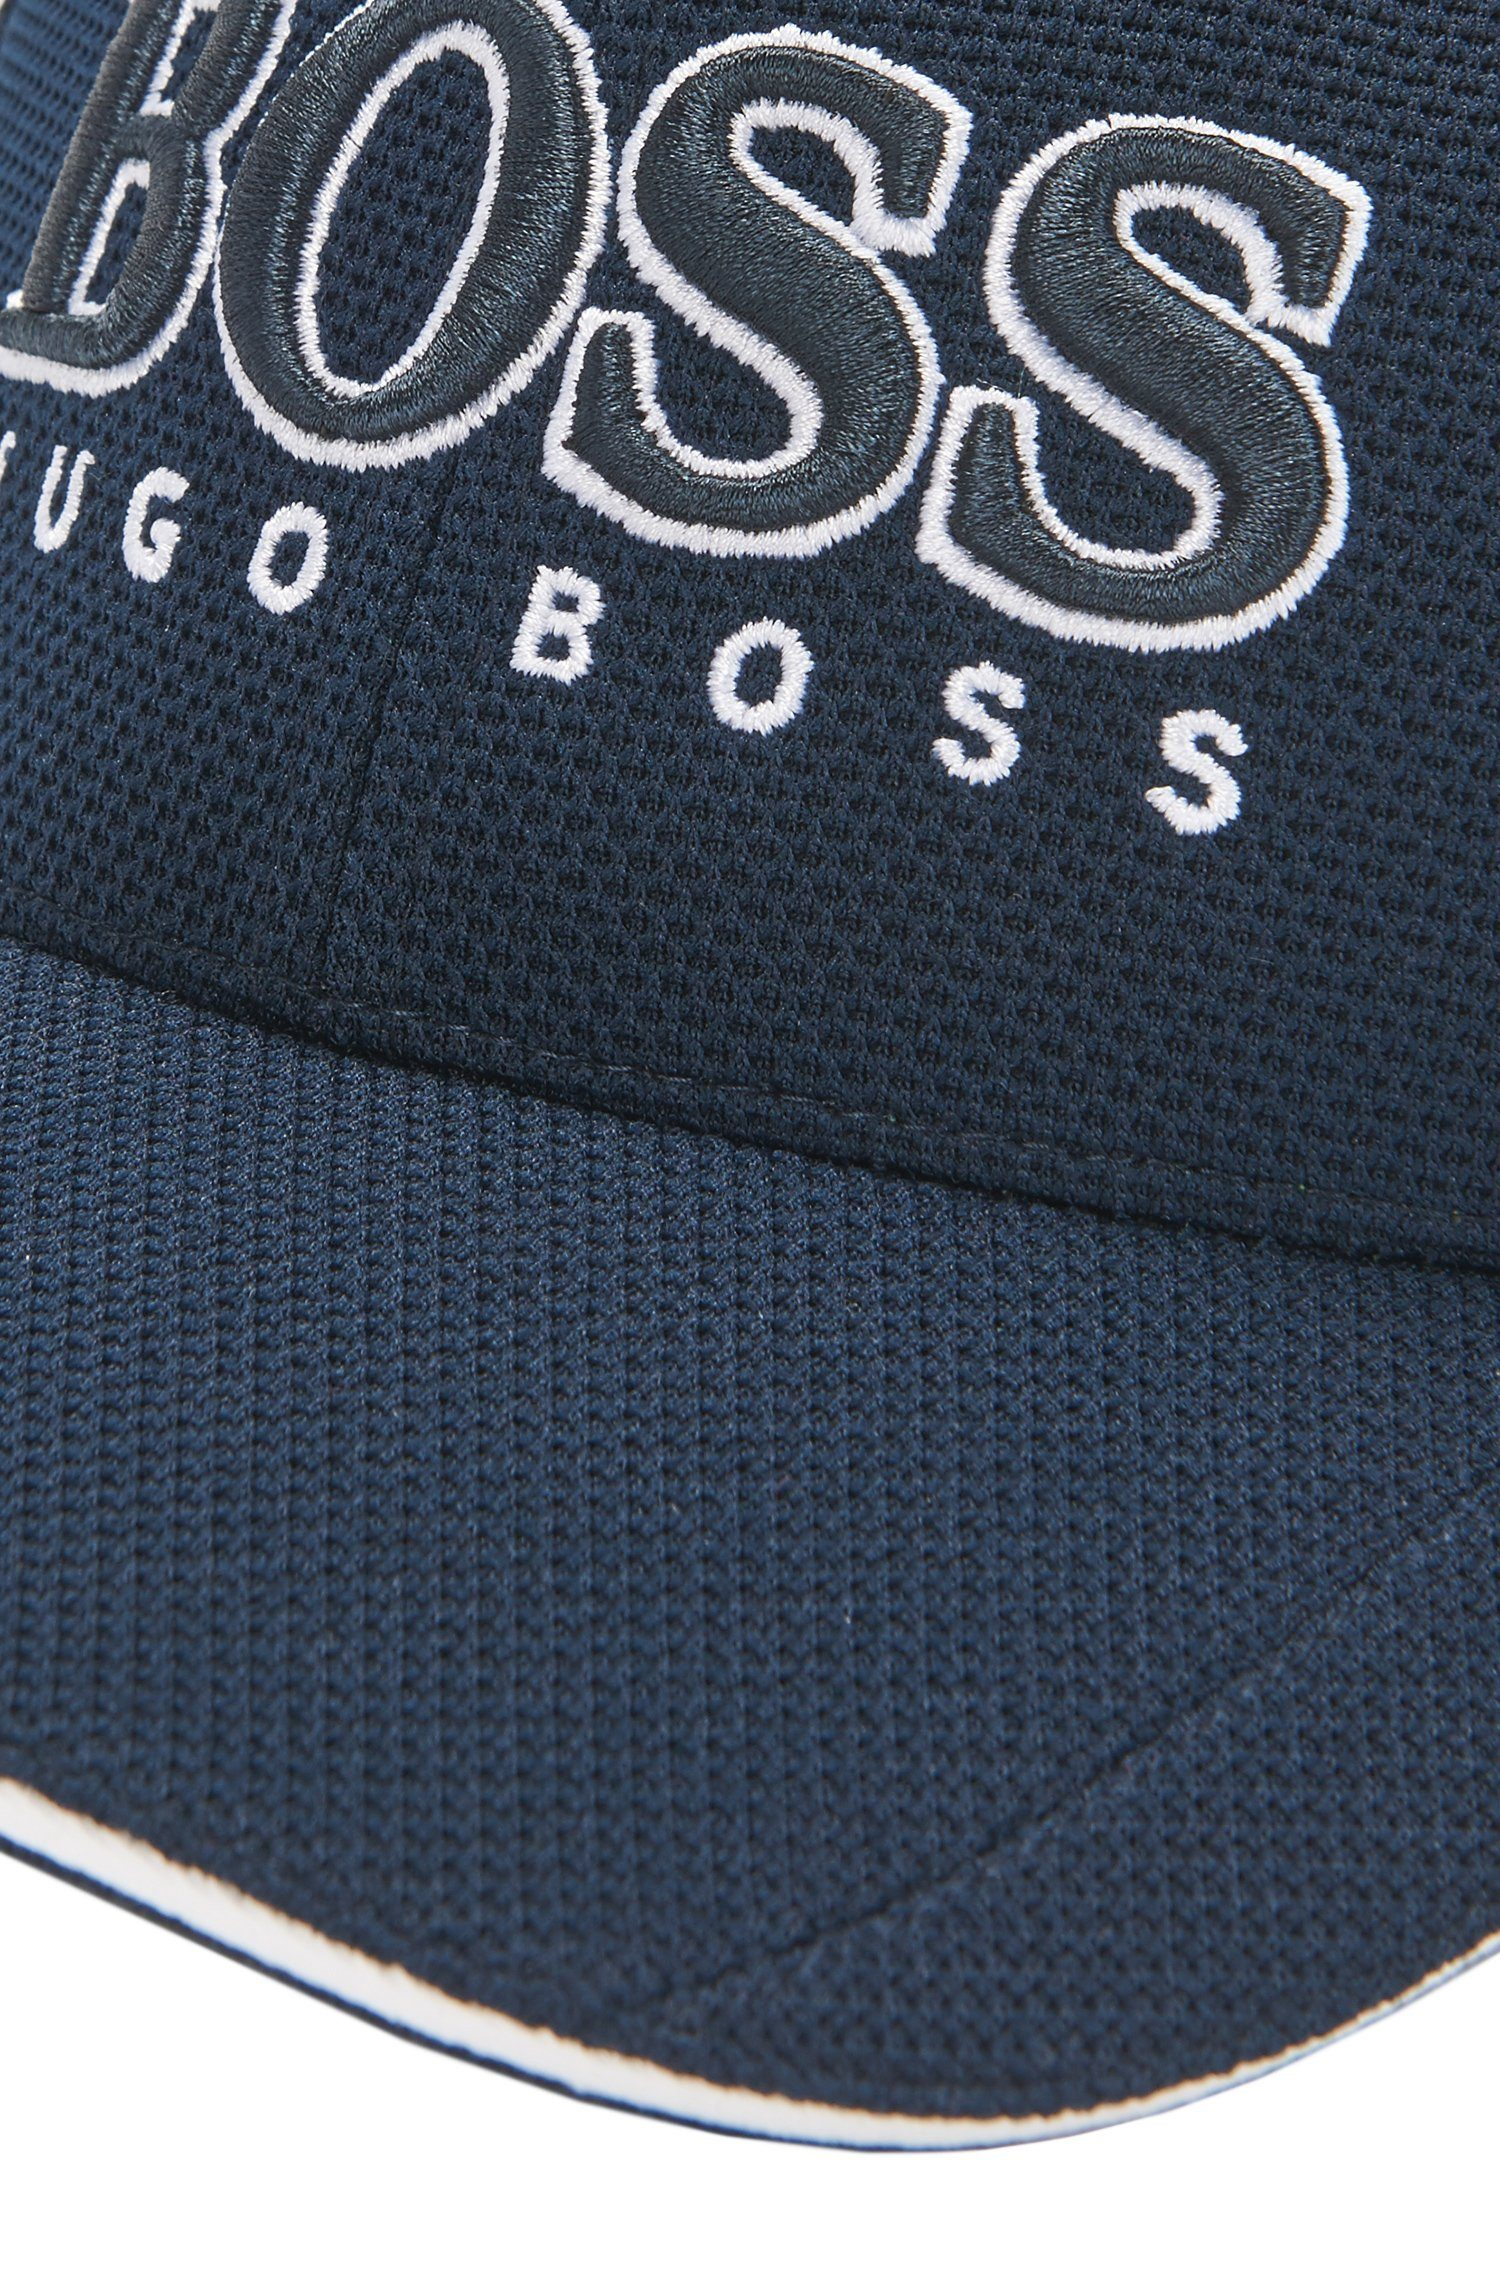 BOSS Athleisure Cap US in Navy BOSS